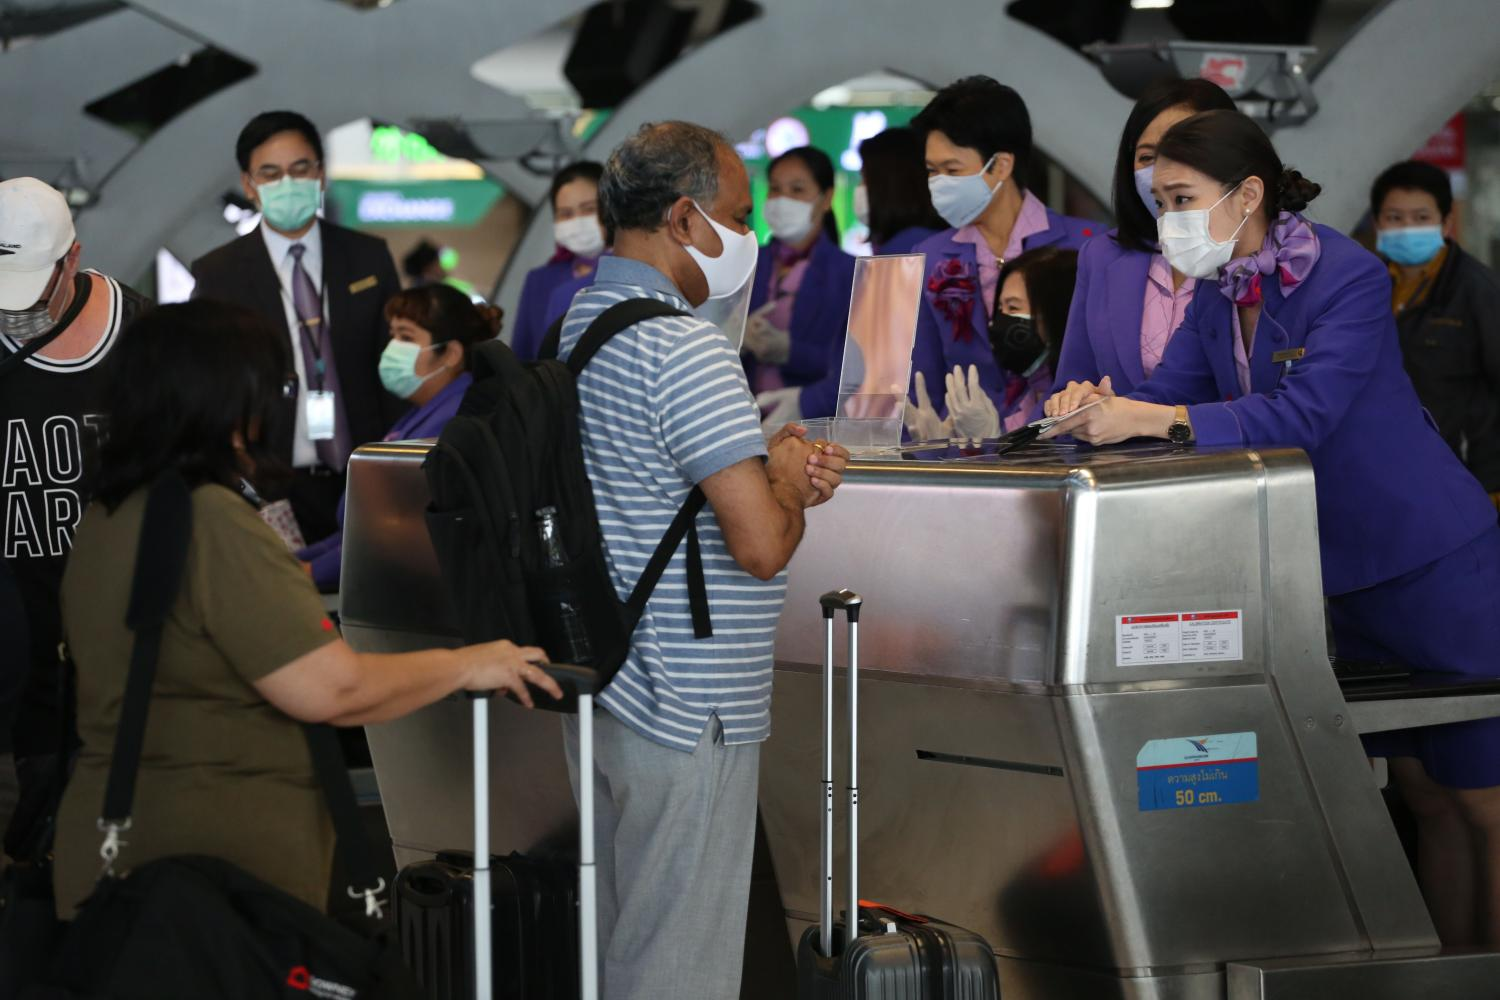 Passengers on Sunday check in at a THAI counter at Suvarnabhumi Airport to board a chartered flight from Bangkok to Auckland in New Zealand. (Bangkok Post photo)